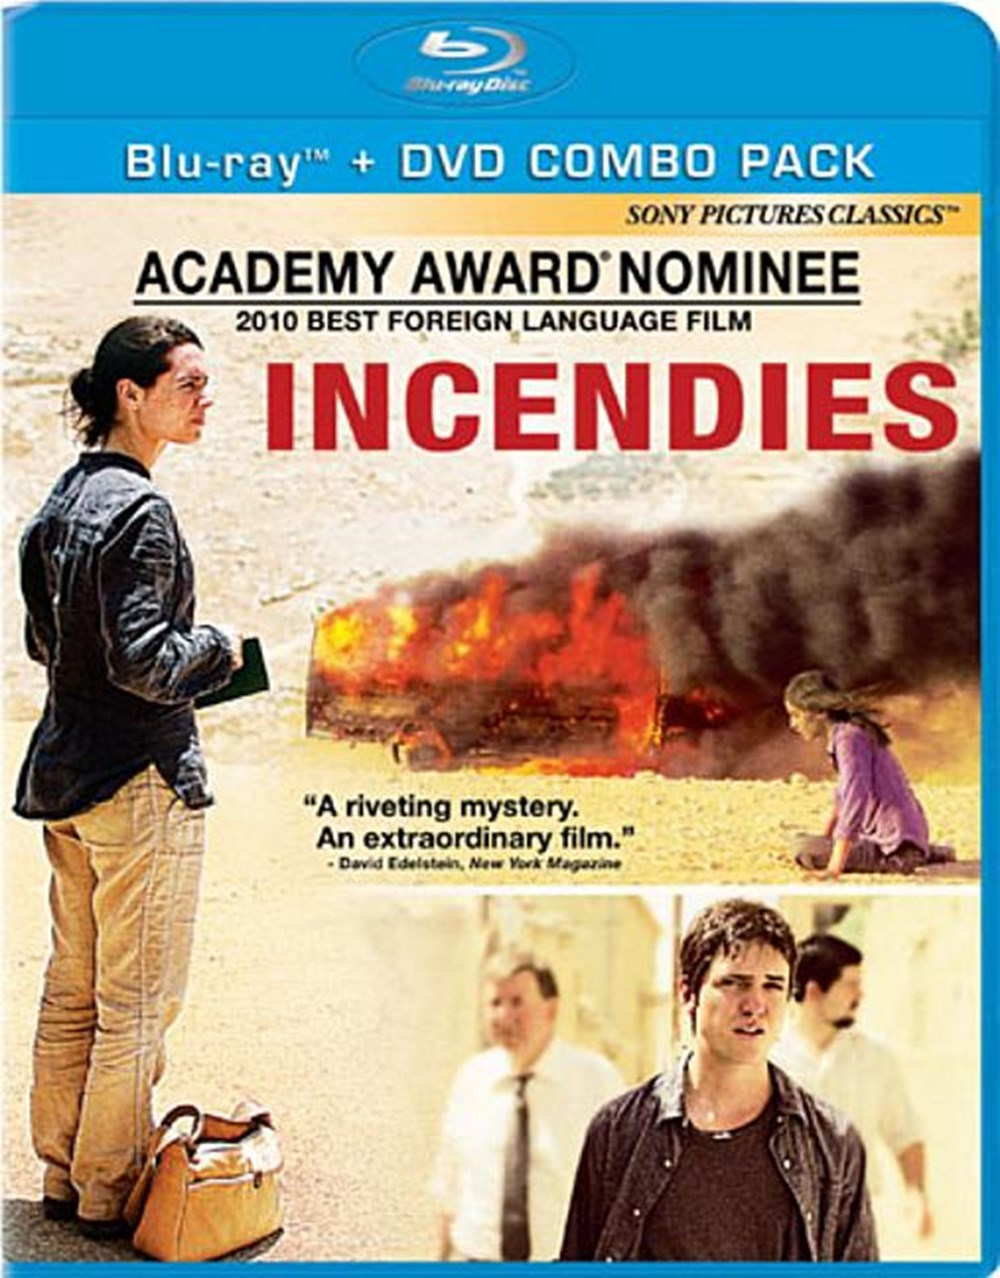 Incendies (DVD Included)